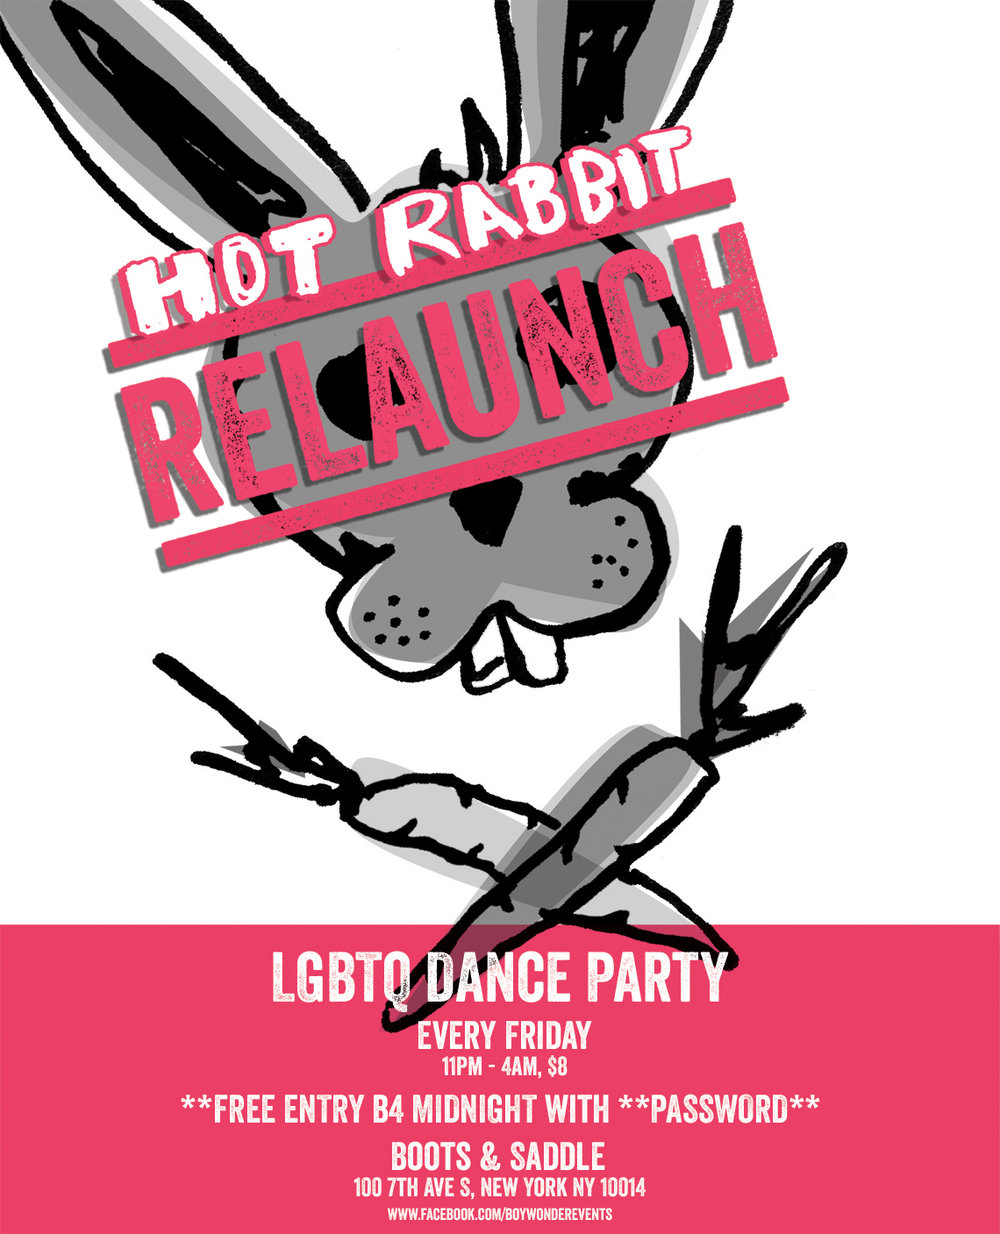 RELAUNCH_HOT RABBIT_MAGAZINE AD.jpg